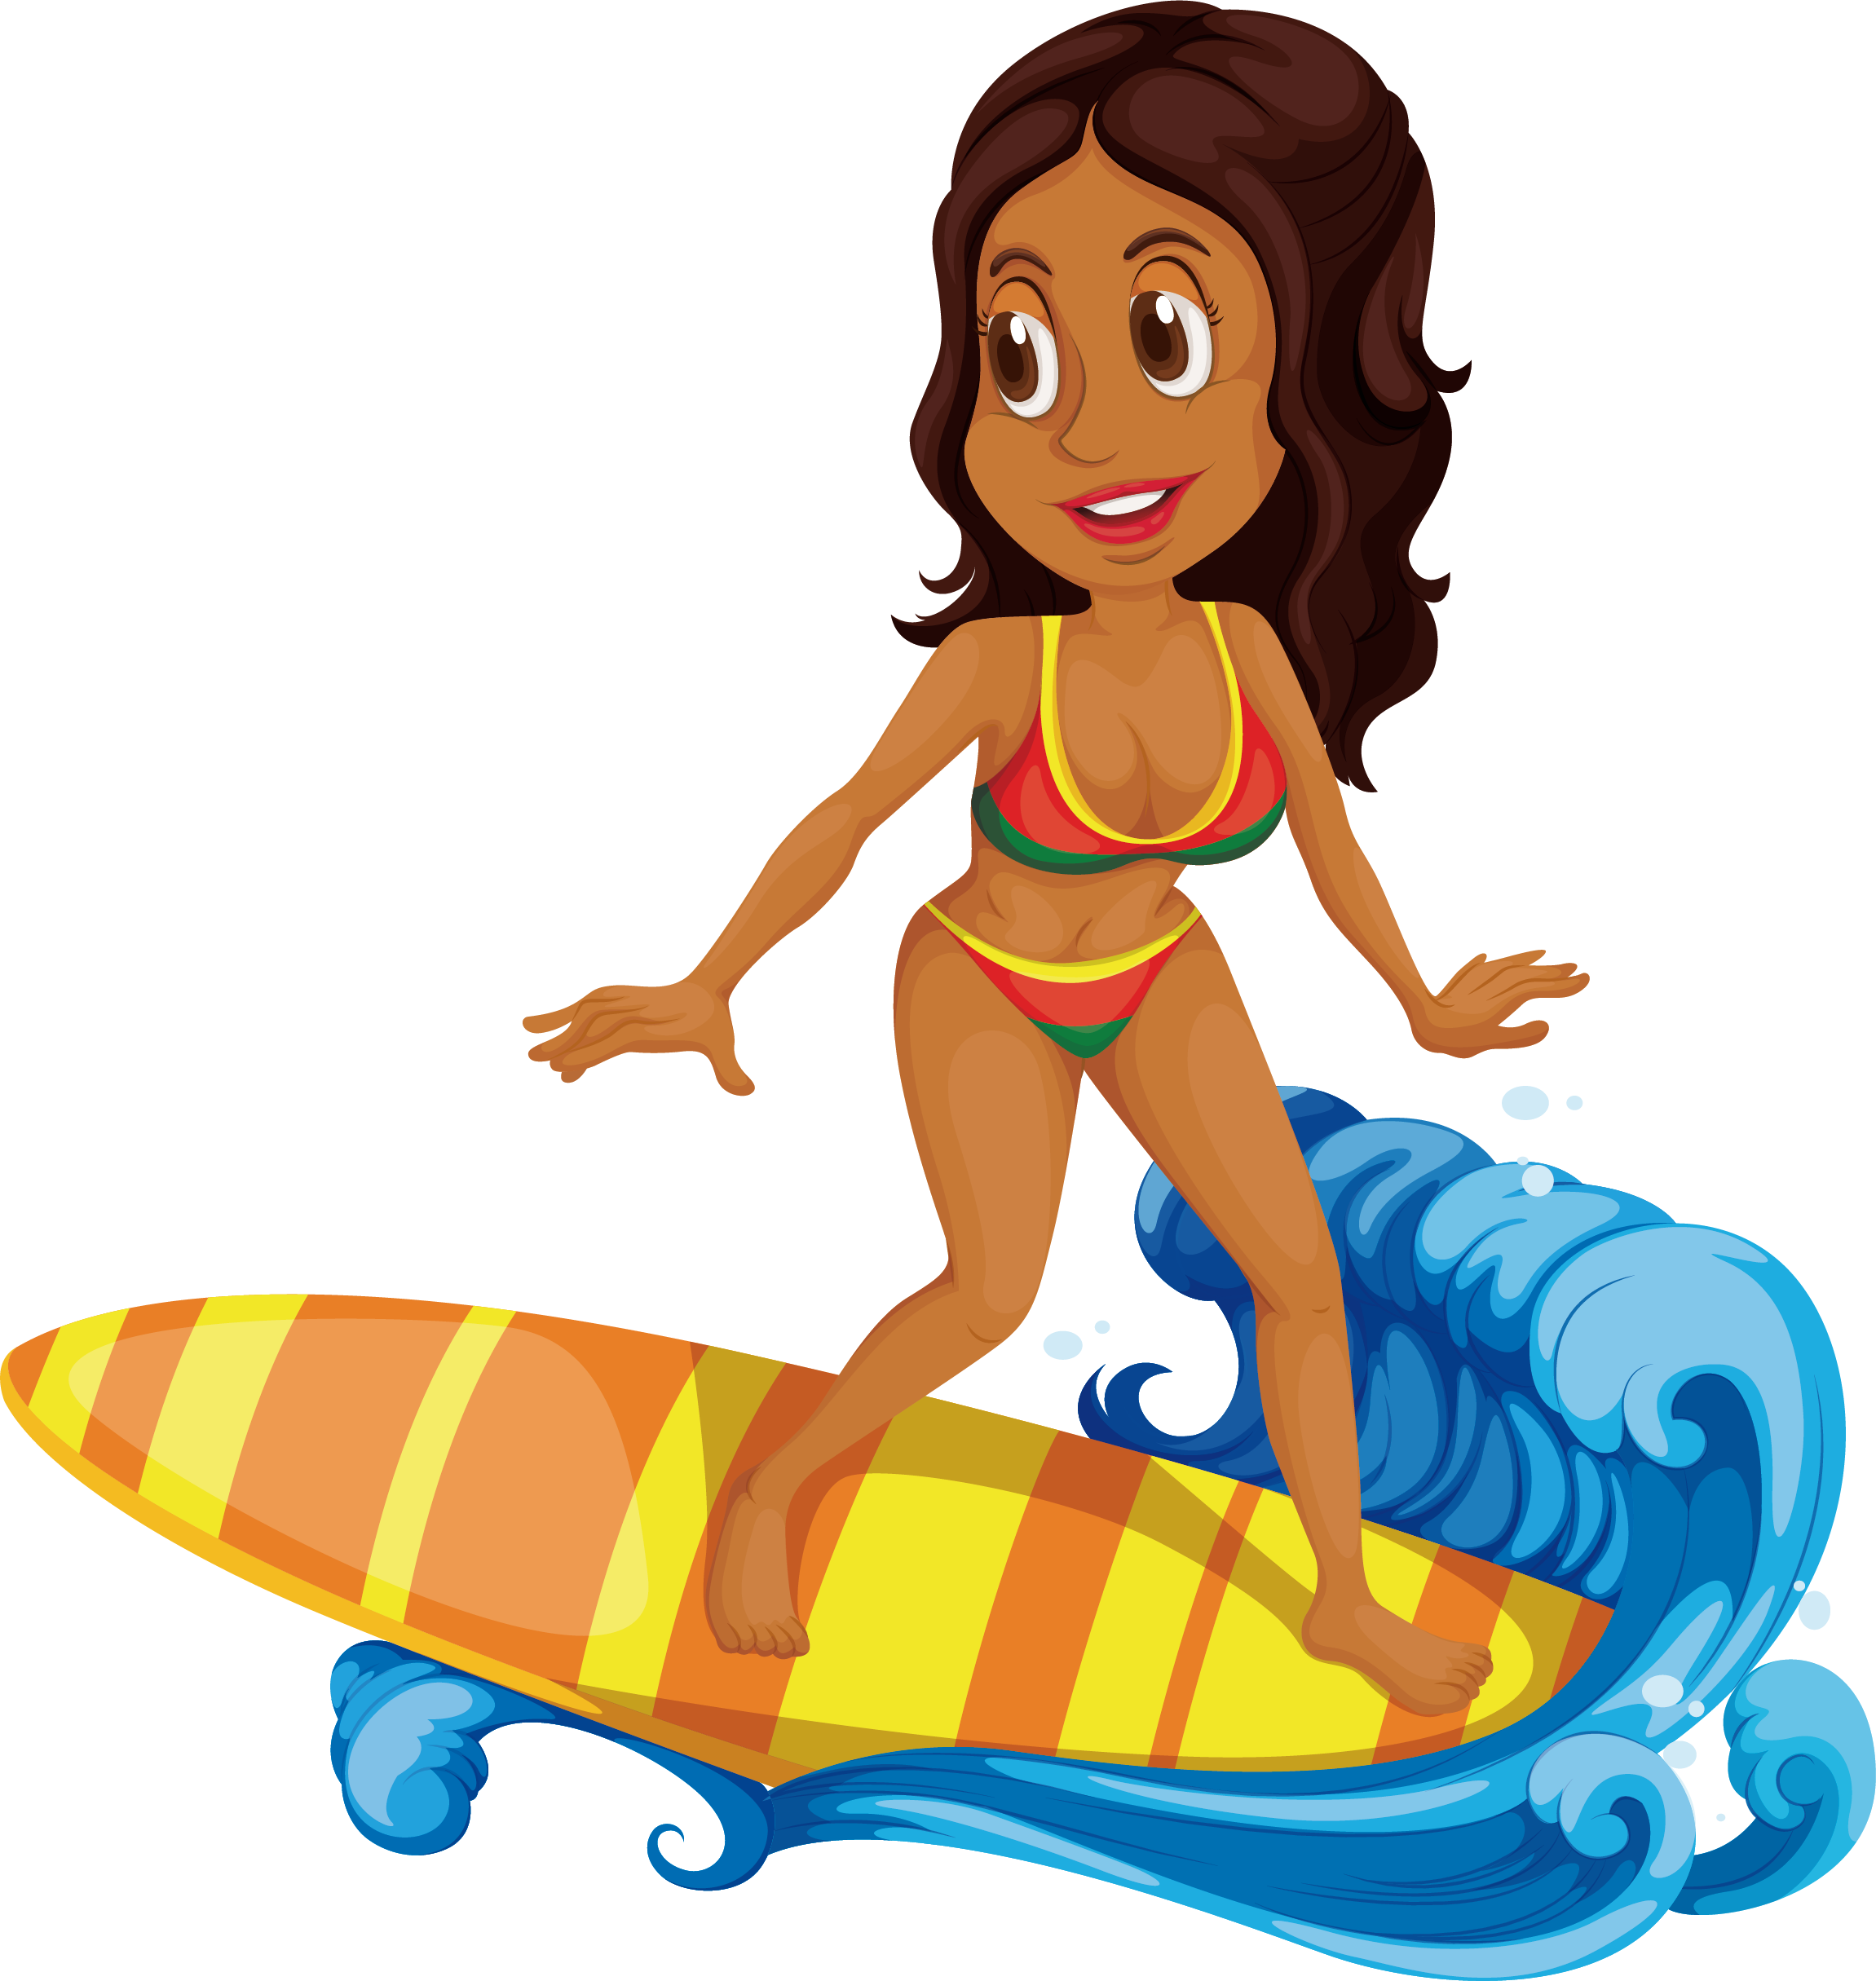 Dog surfing clipart jpg library Surfing Cartoon Clip art - Sea surfing black beauty 2301*2430 ... jpg library